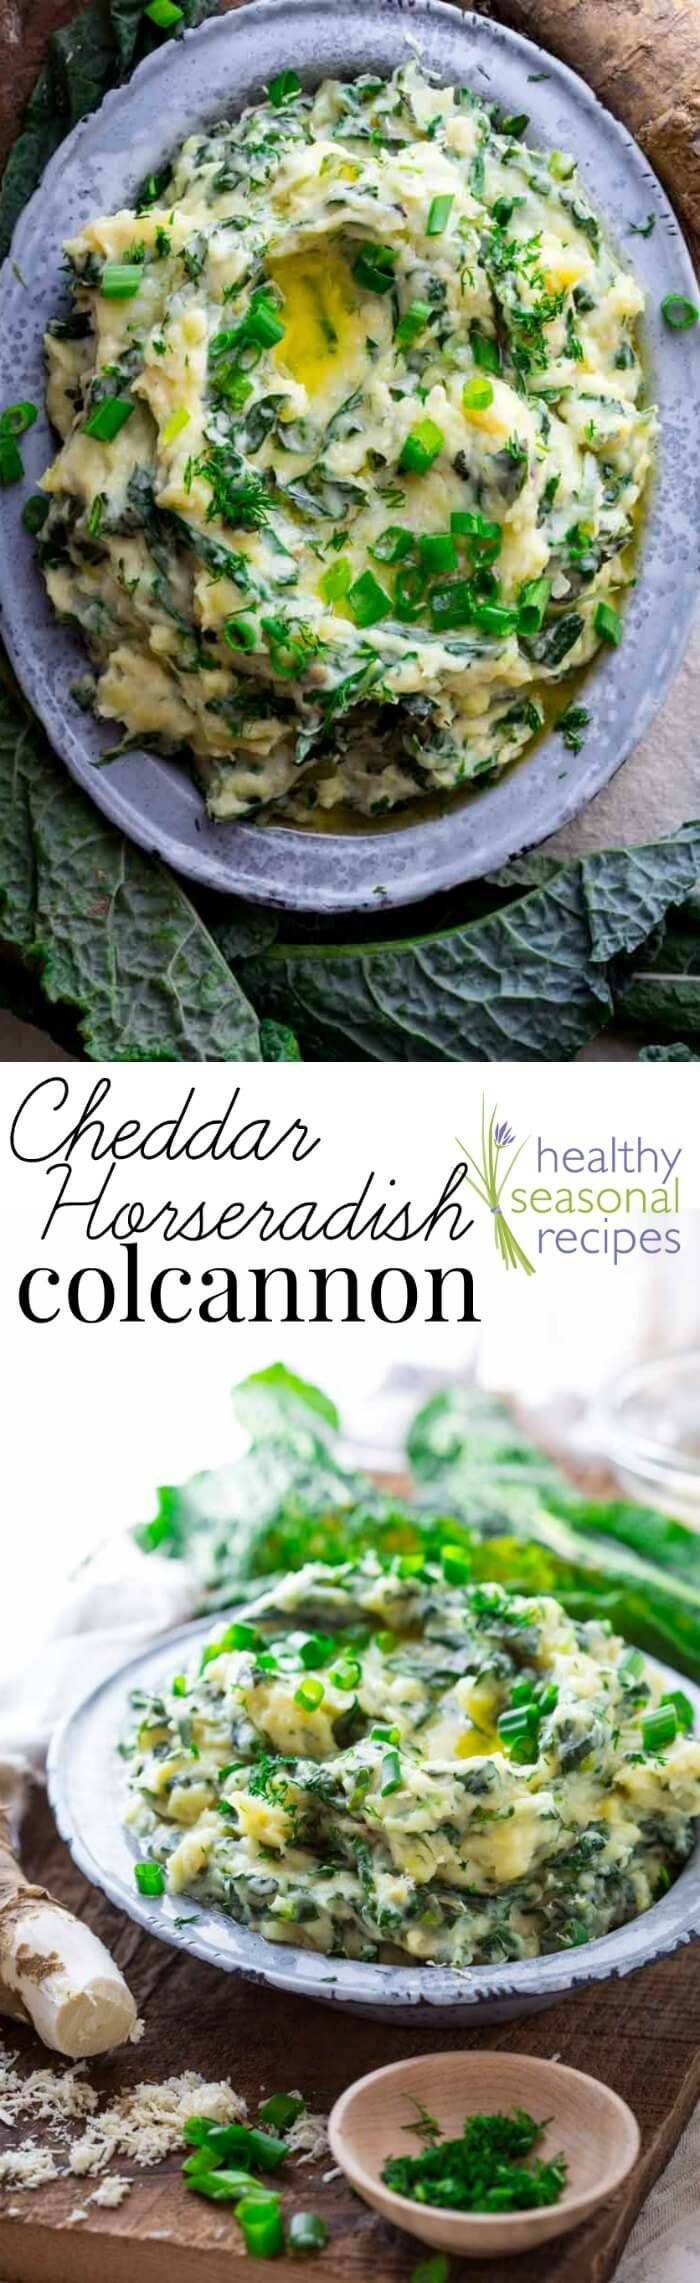 Cheddar Horseradish Colcannon, made with garlicky kale, Vermont cheddar, freshly grated horseradish root, a little bit of dill and sweet cream butter. Try it for St. Paddy's day. healthyseasonalrecipes.com by @healthyseasonal